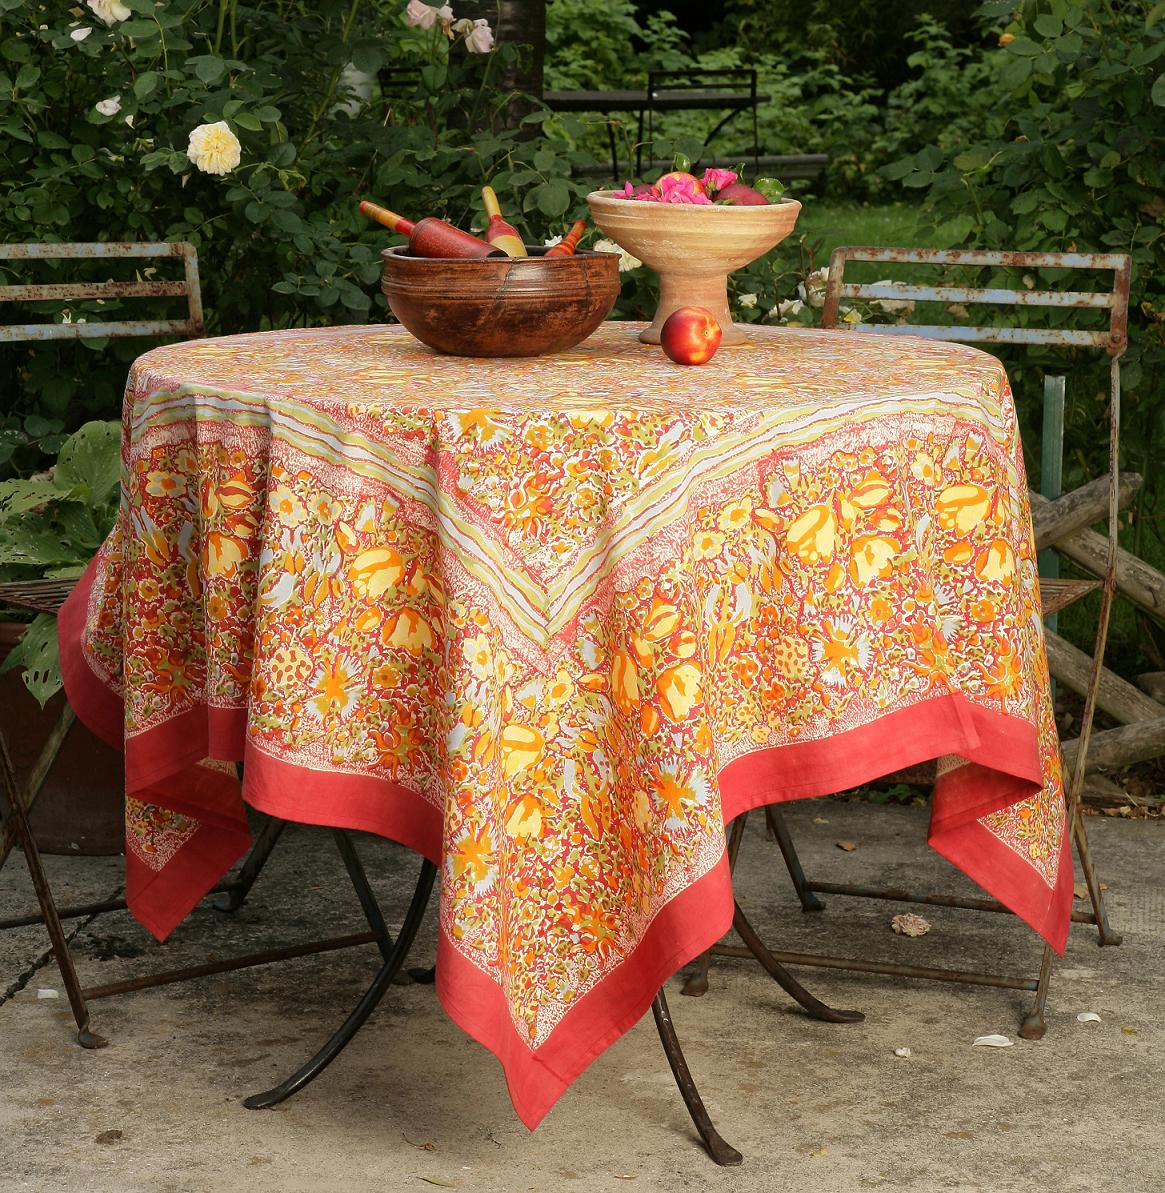 couleur nature tablecloths table runners placemats napkins blakeandstephens unltd artistic accents tablecloth ikea glass top home items for lamp green console marble office